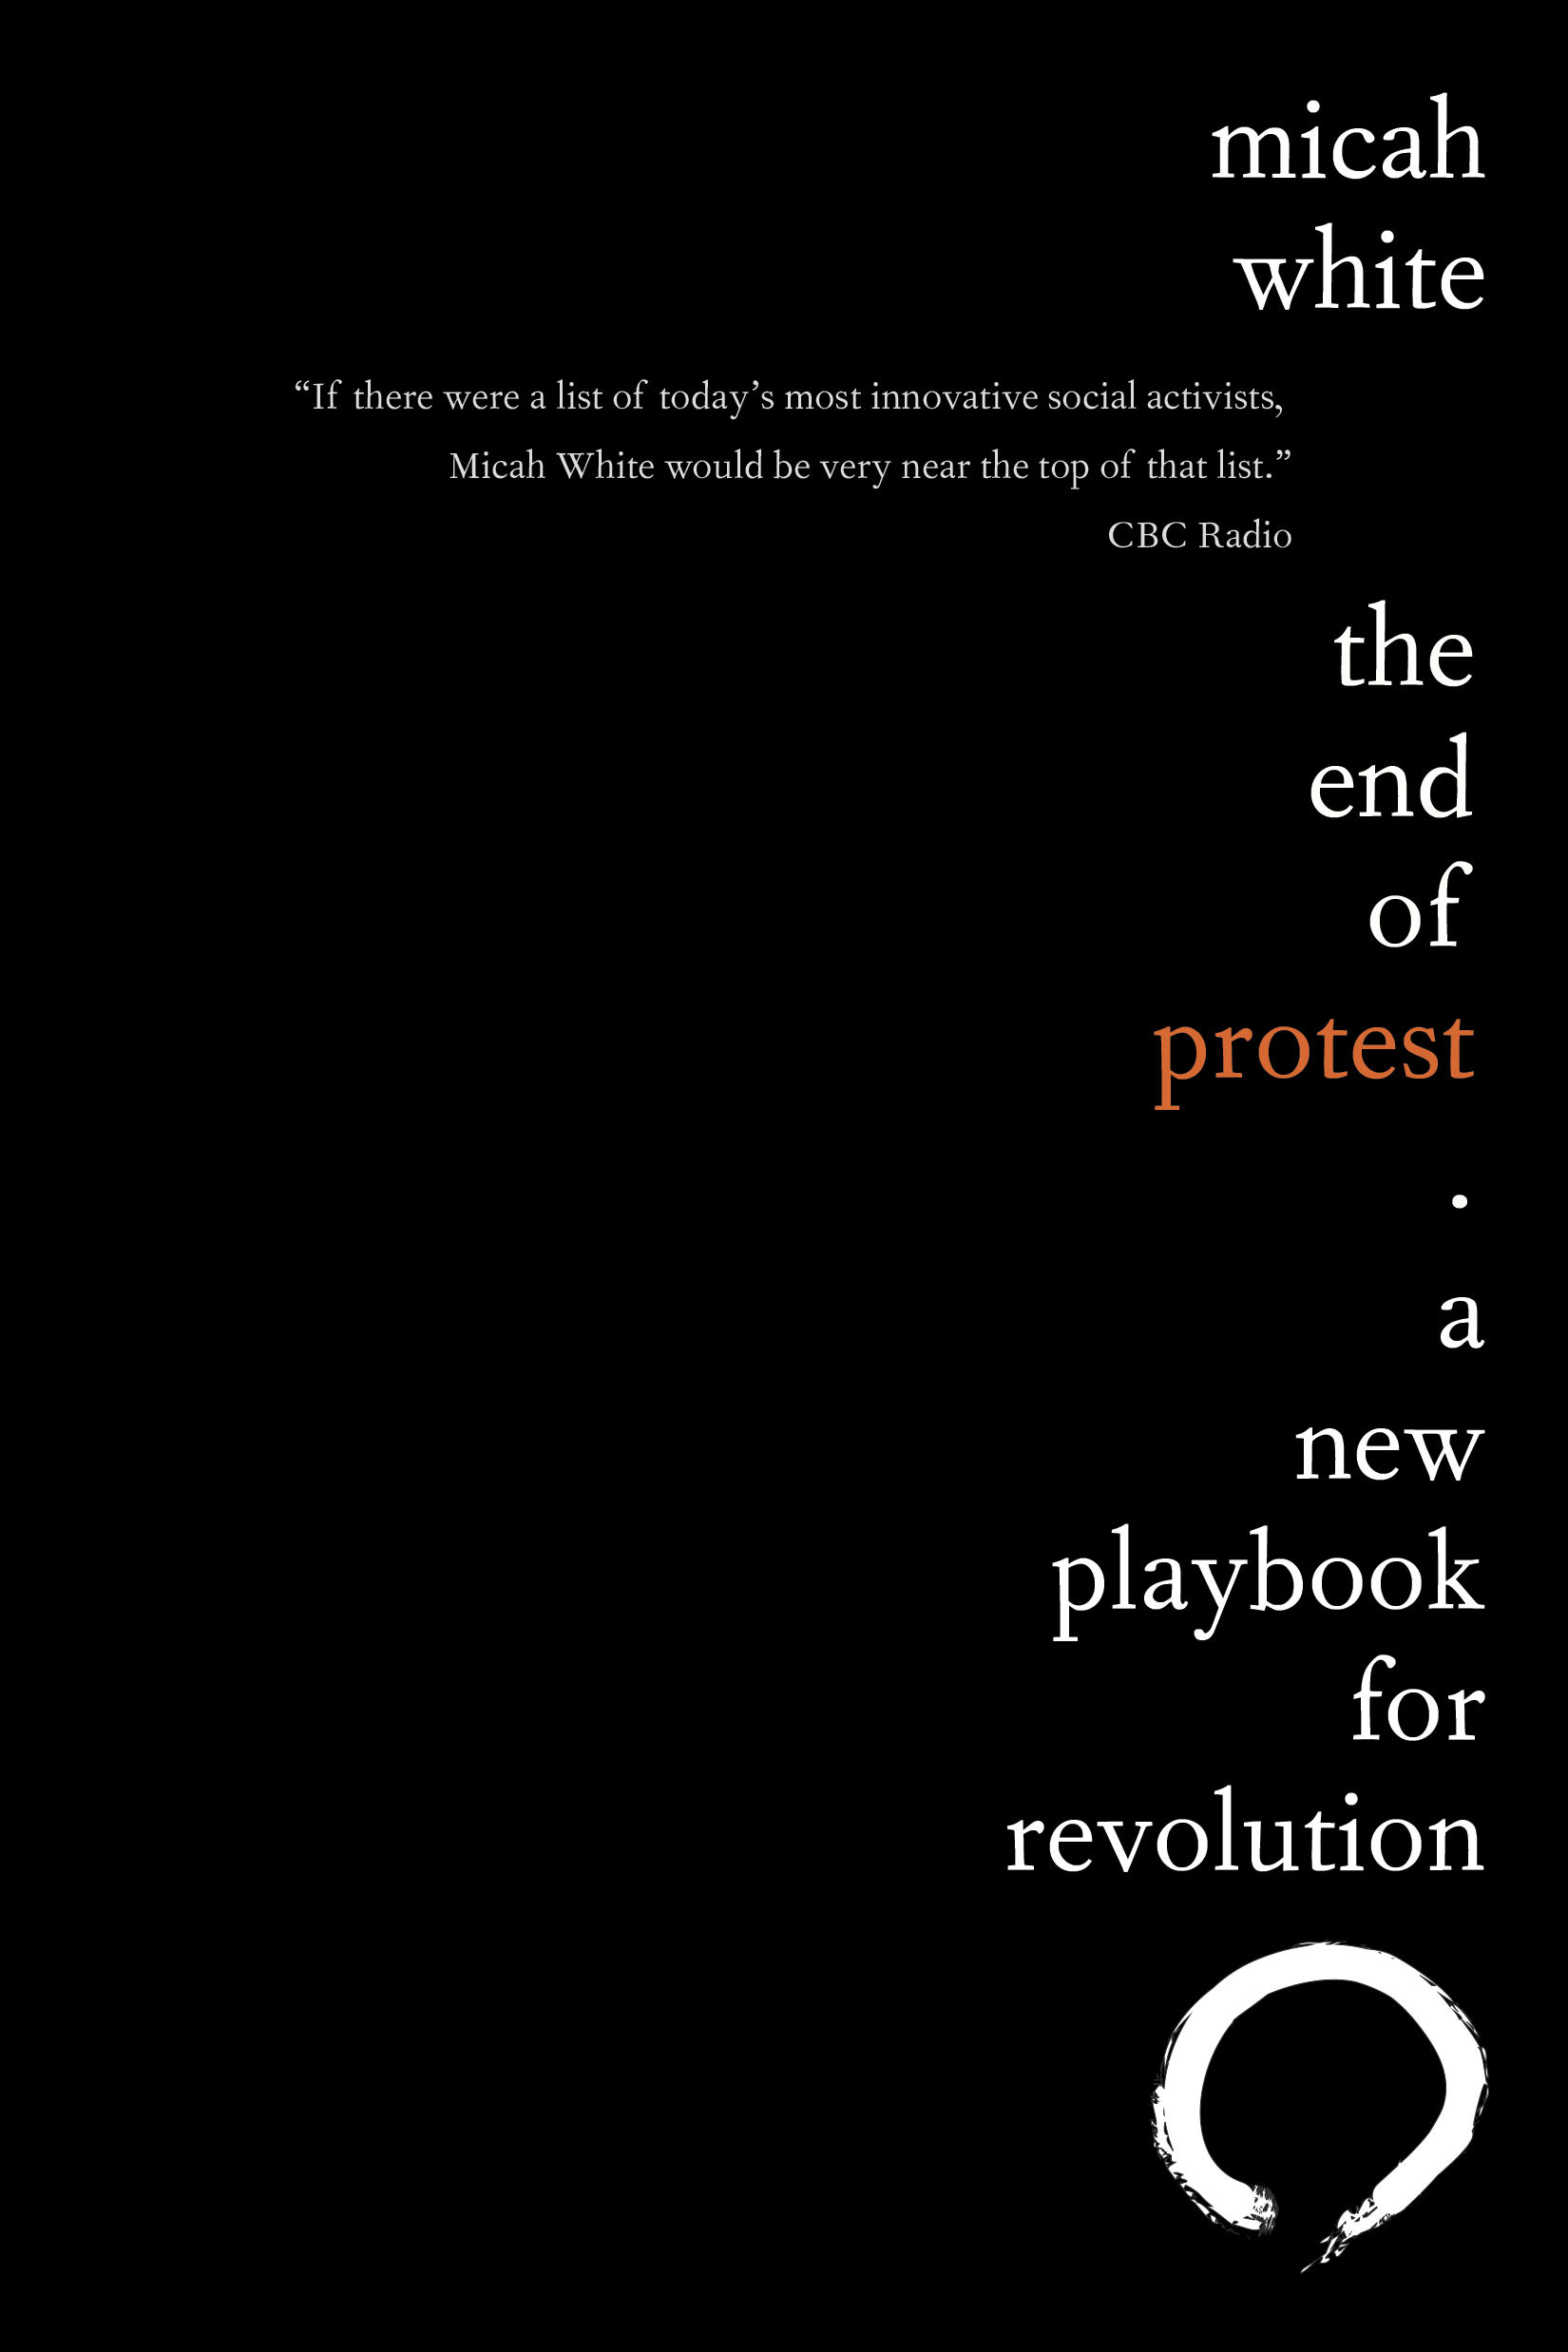 THE END OF PROTEST: A NEW PLAYBOOK FOR REVOLUTION will be published on March 15, 2016